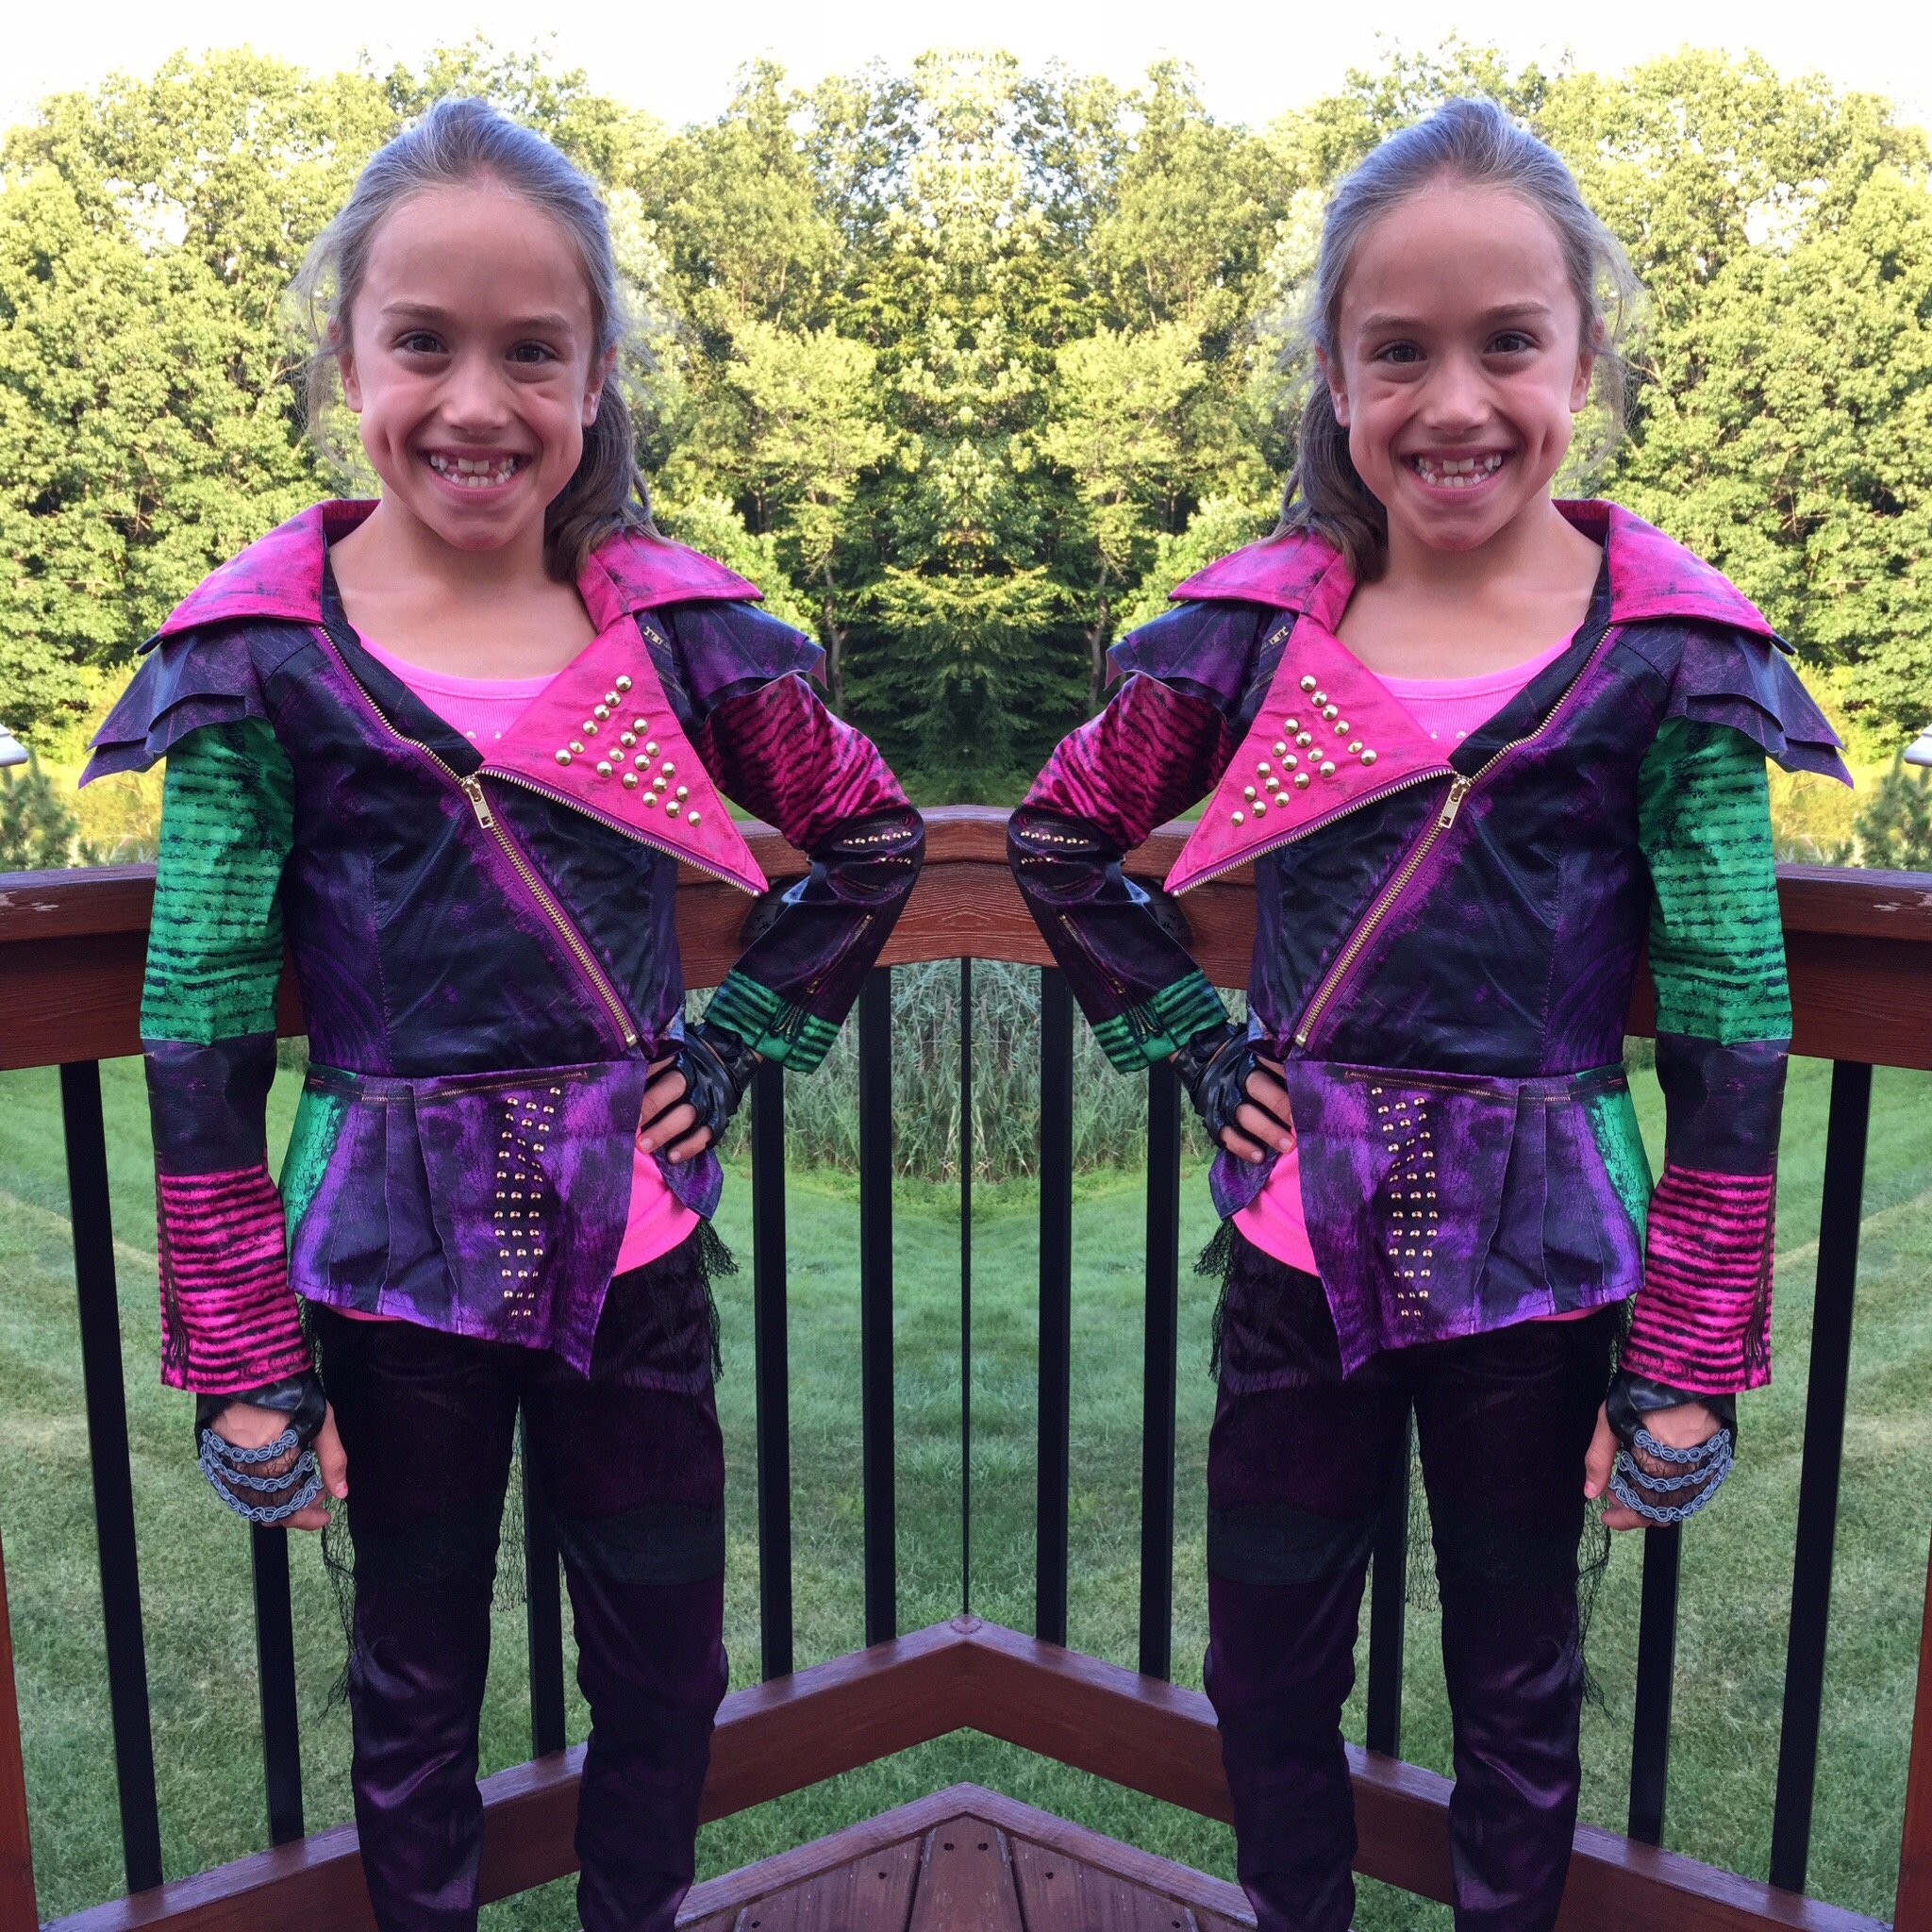 disney descendants mal costume photos video and ideas for halloween disneydescendants classy mommy